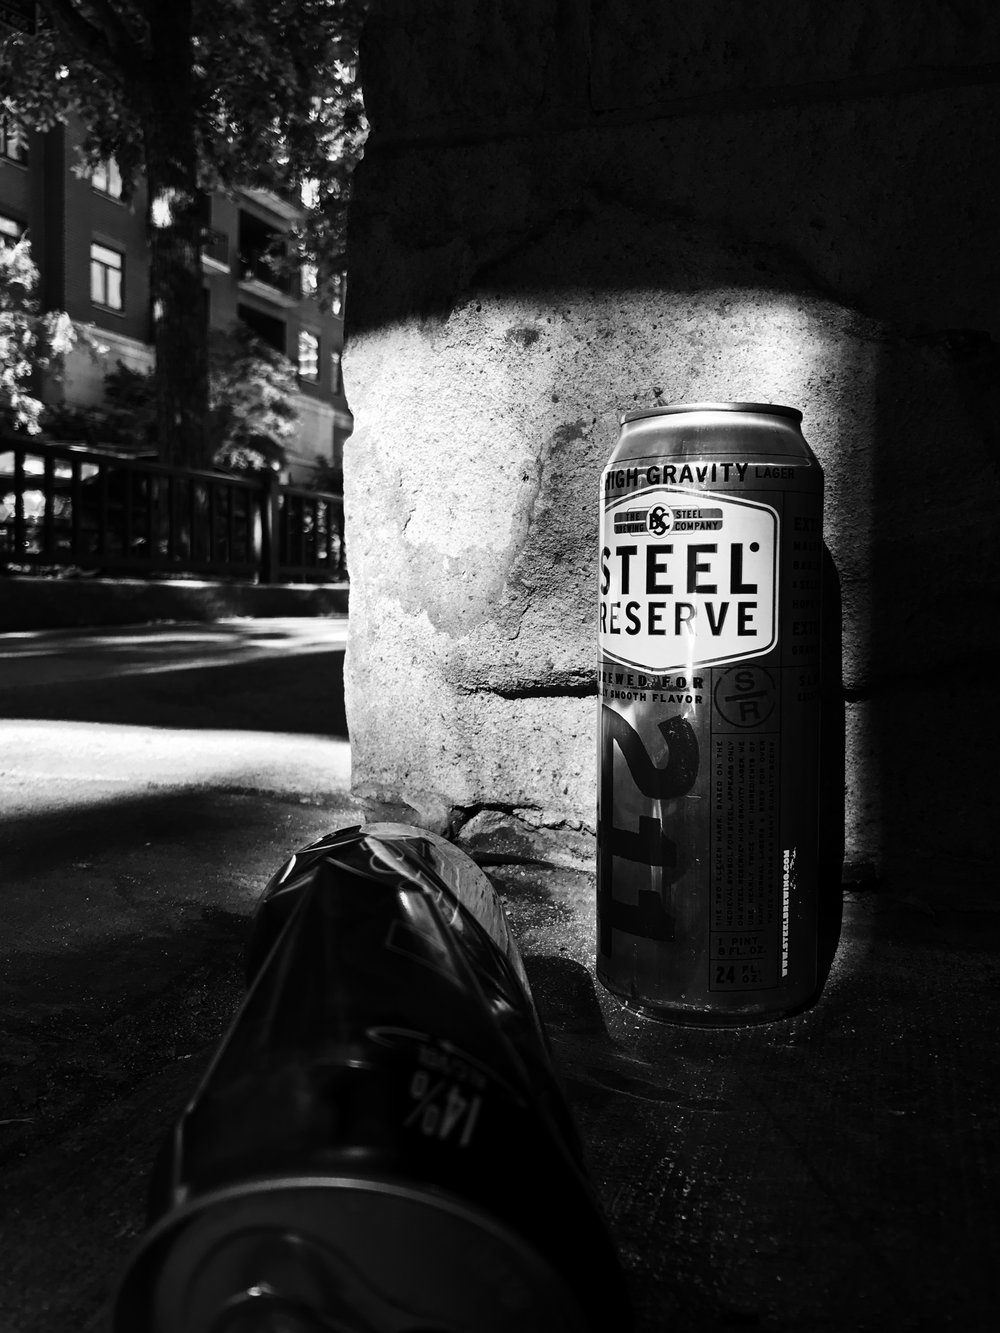 Steel Reserve, Chicago, 7/29/2017